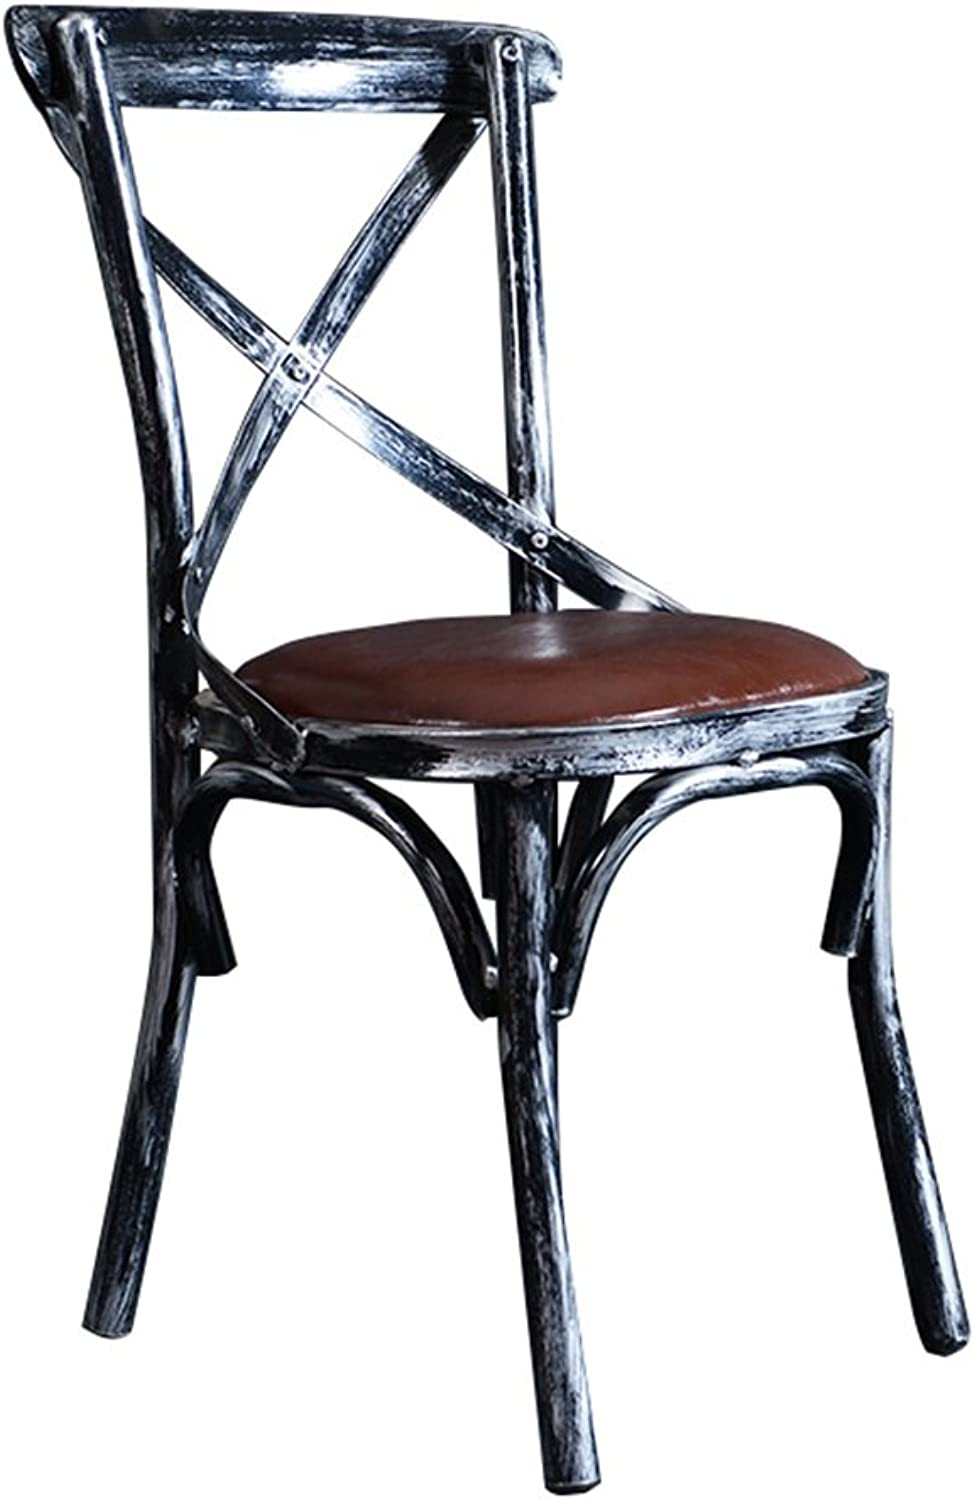 Vintage Barstools Metal Iron for Kitchens Bar as Dining Chair Breakfast Stool Retro High Stools as Bar Stools Indoor Outdoor Leisure PU Seat Shabby Industrial Design (color   Vintage Silver Bracket)